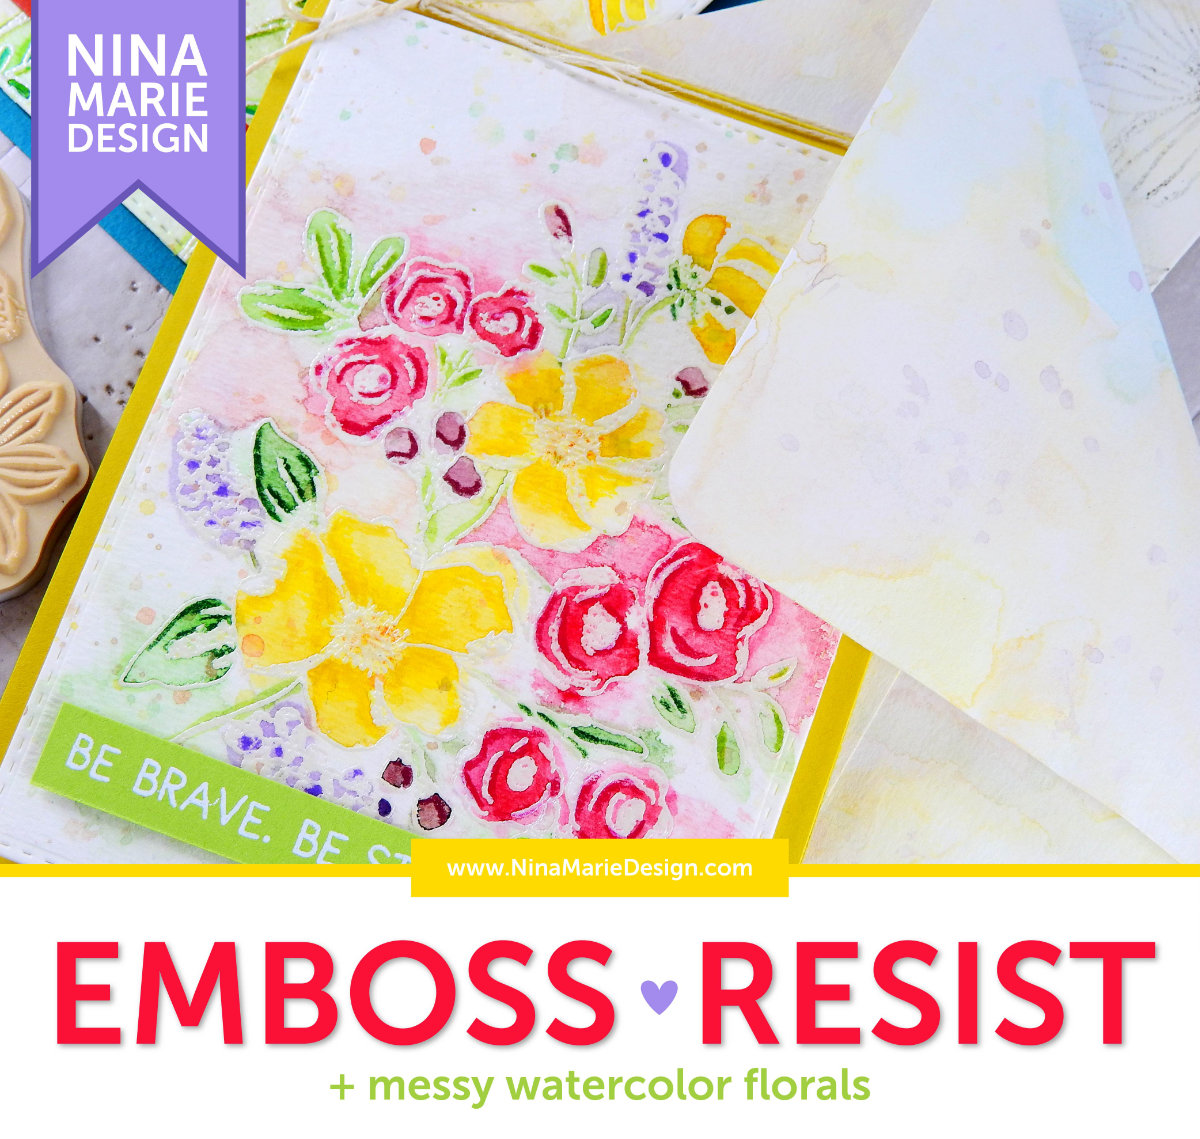 Emboss Resist + Messy Watercolor Florals | Nina-Marie Design